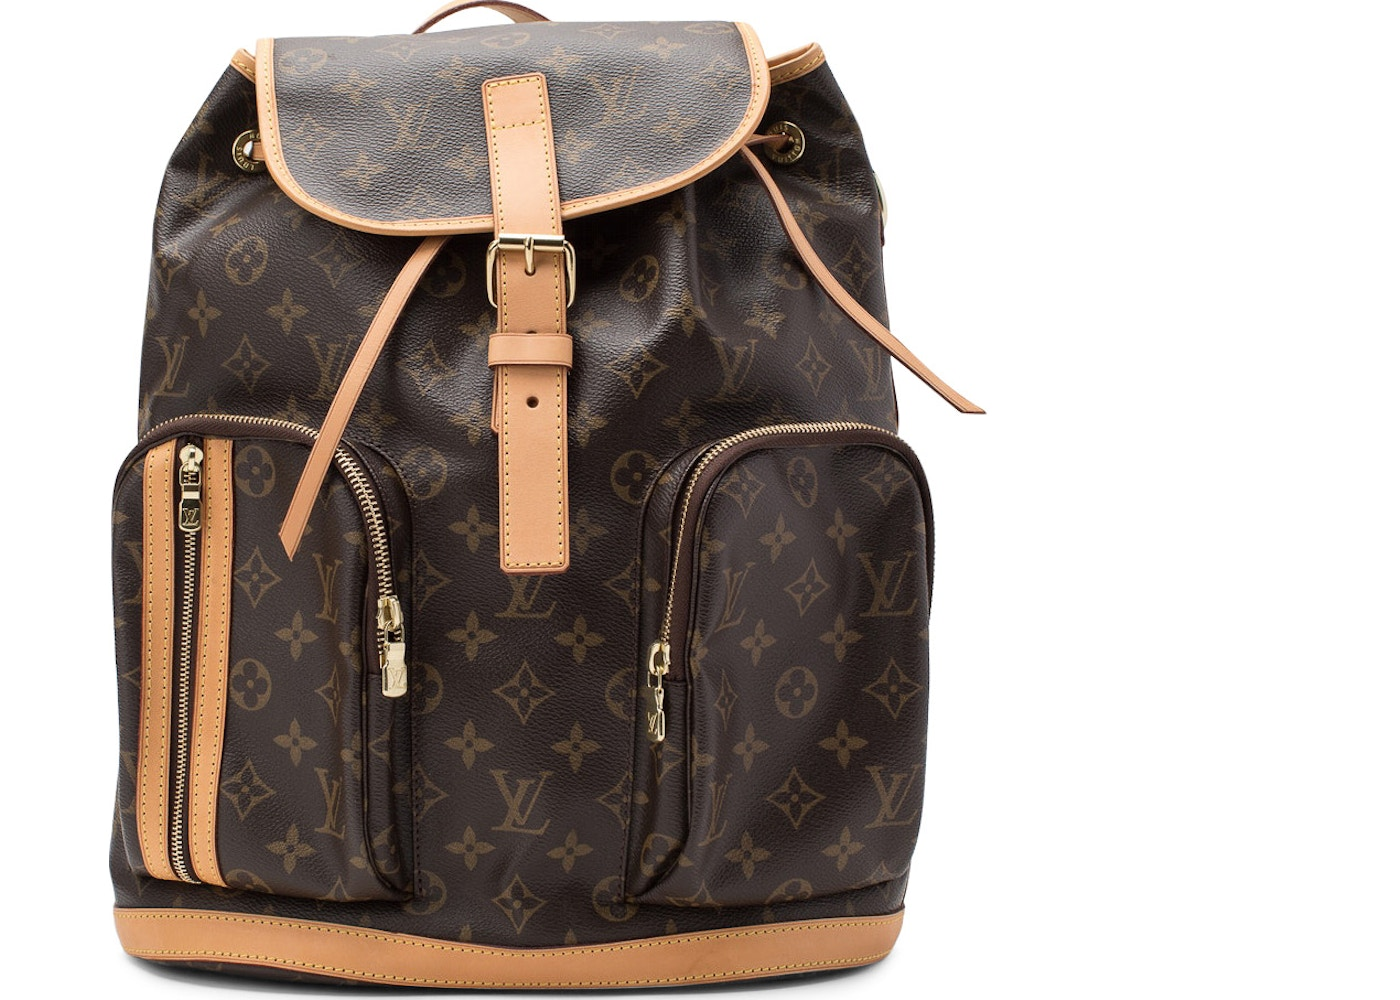 b214d2a8a3df Louis Vuitton Backpack Bosphore Monogram Brown. Monogram Brown